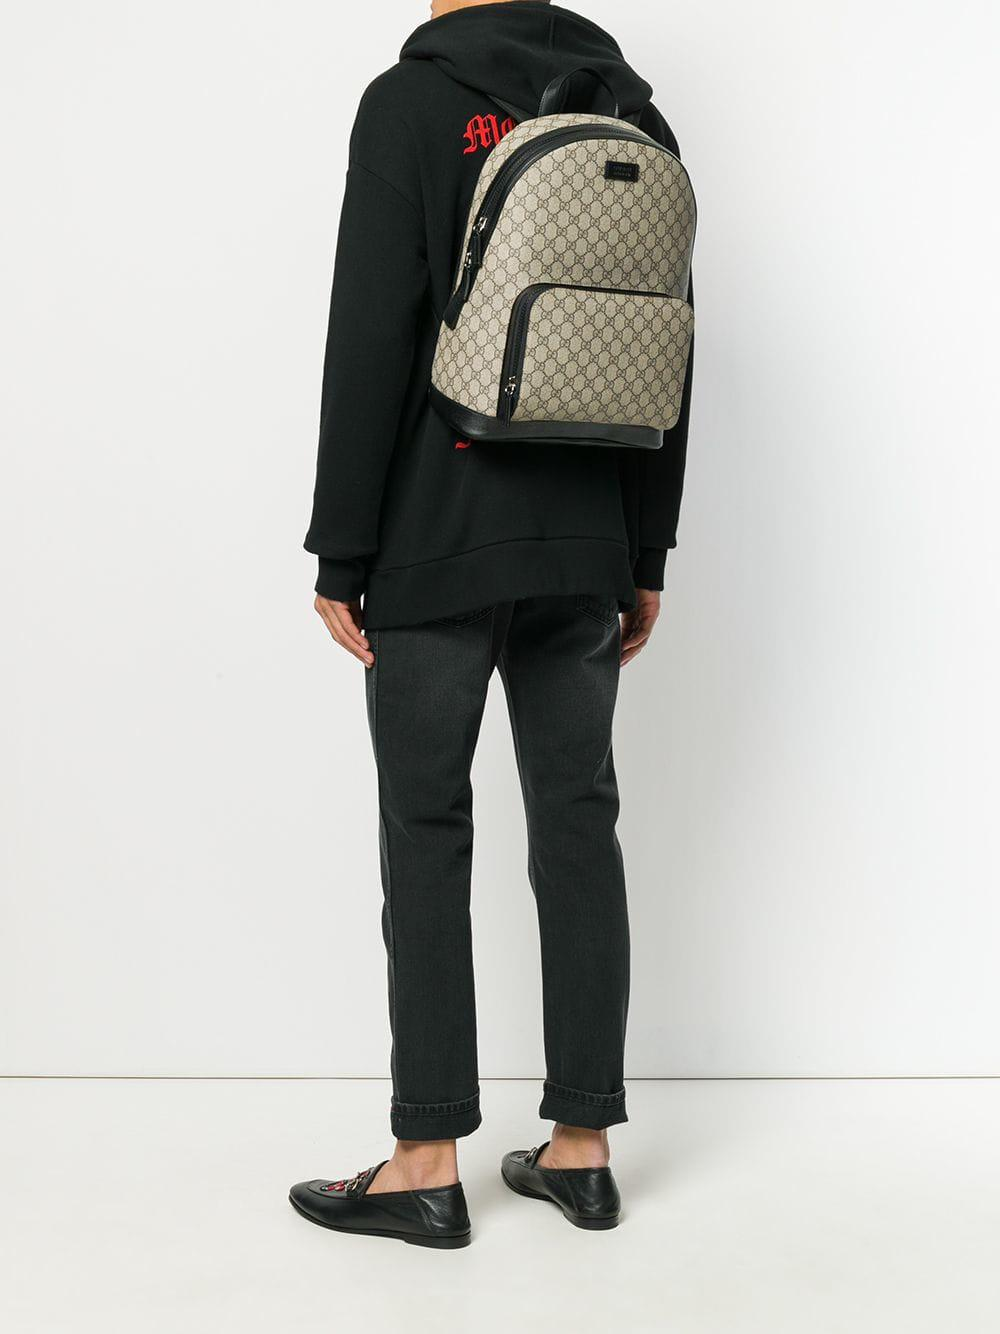 Gucci - Brown GG Supreme Backpack for Men - Lyst. View fullscreen c14a7d459c